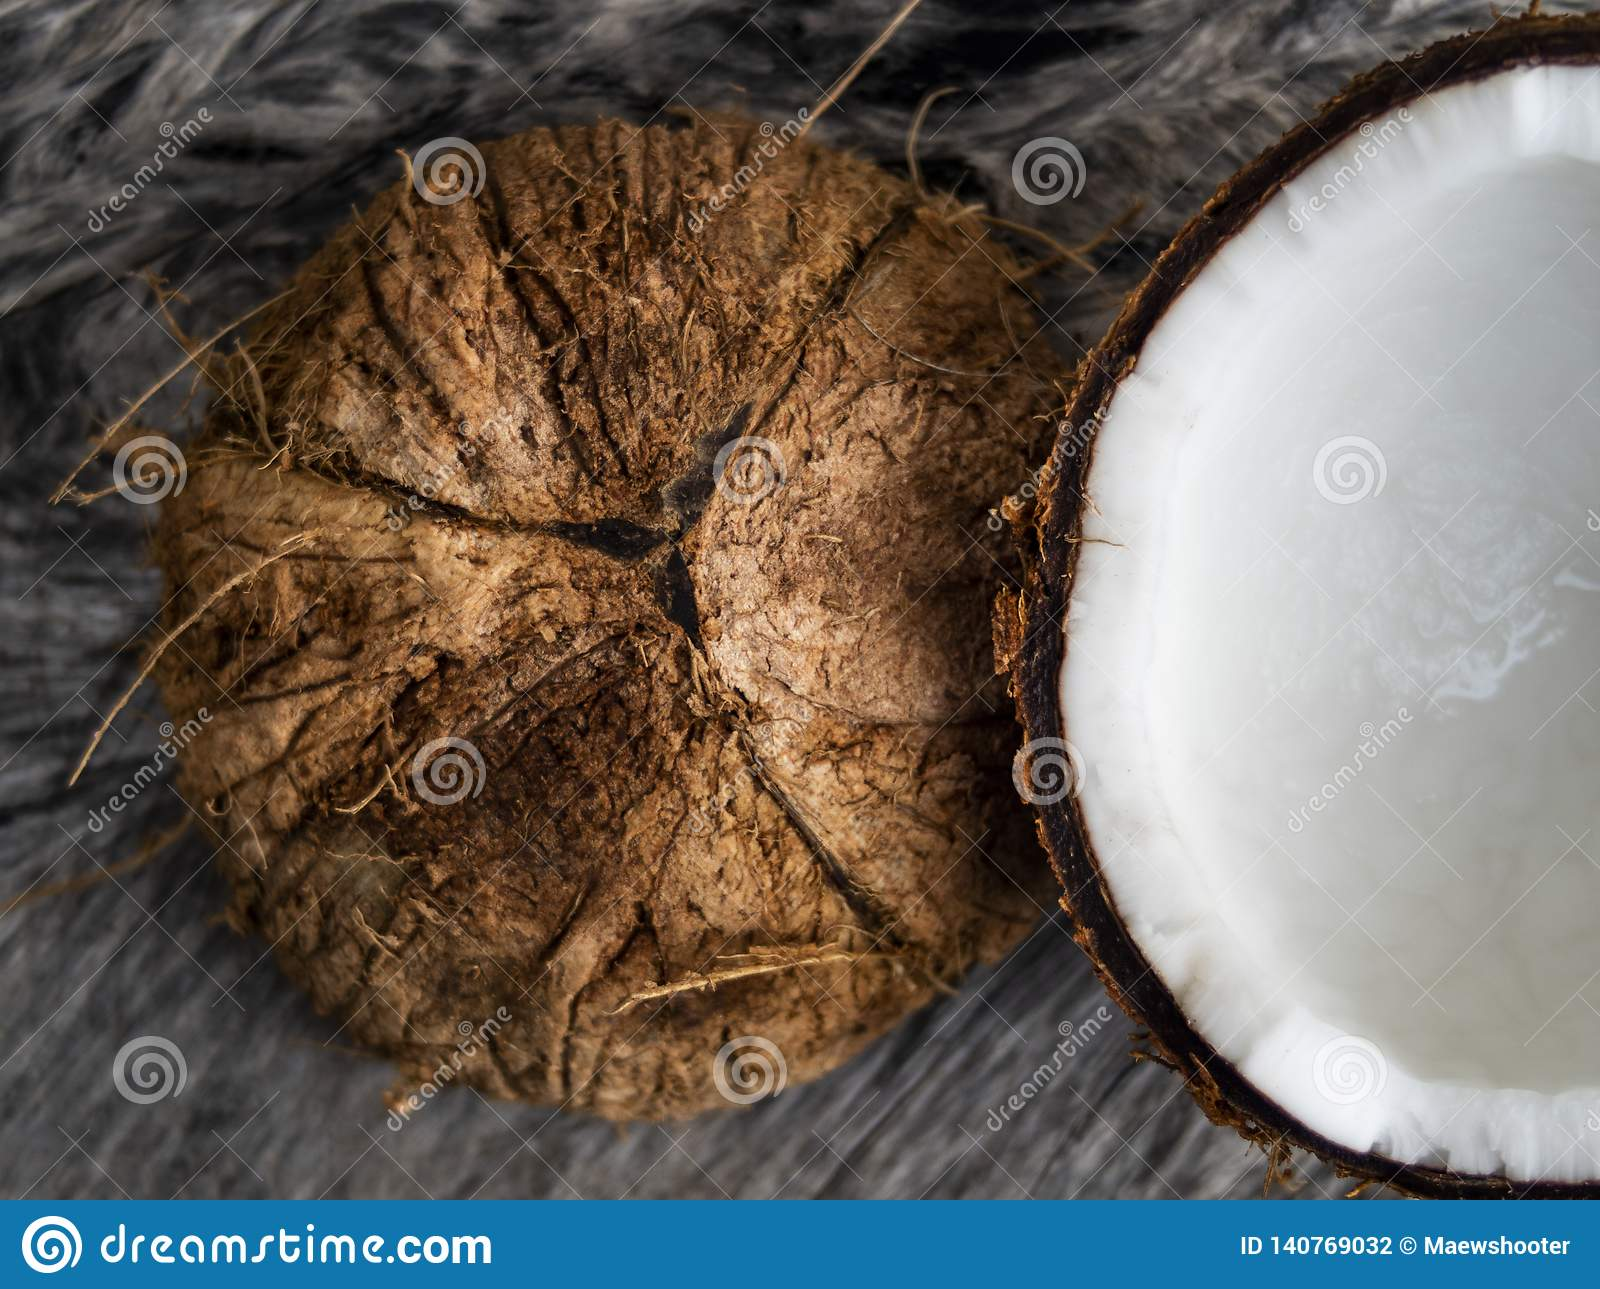 how to crack open a coconut with a knife